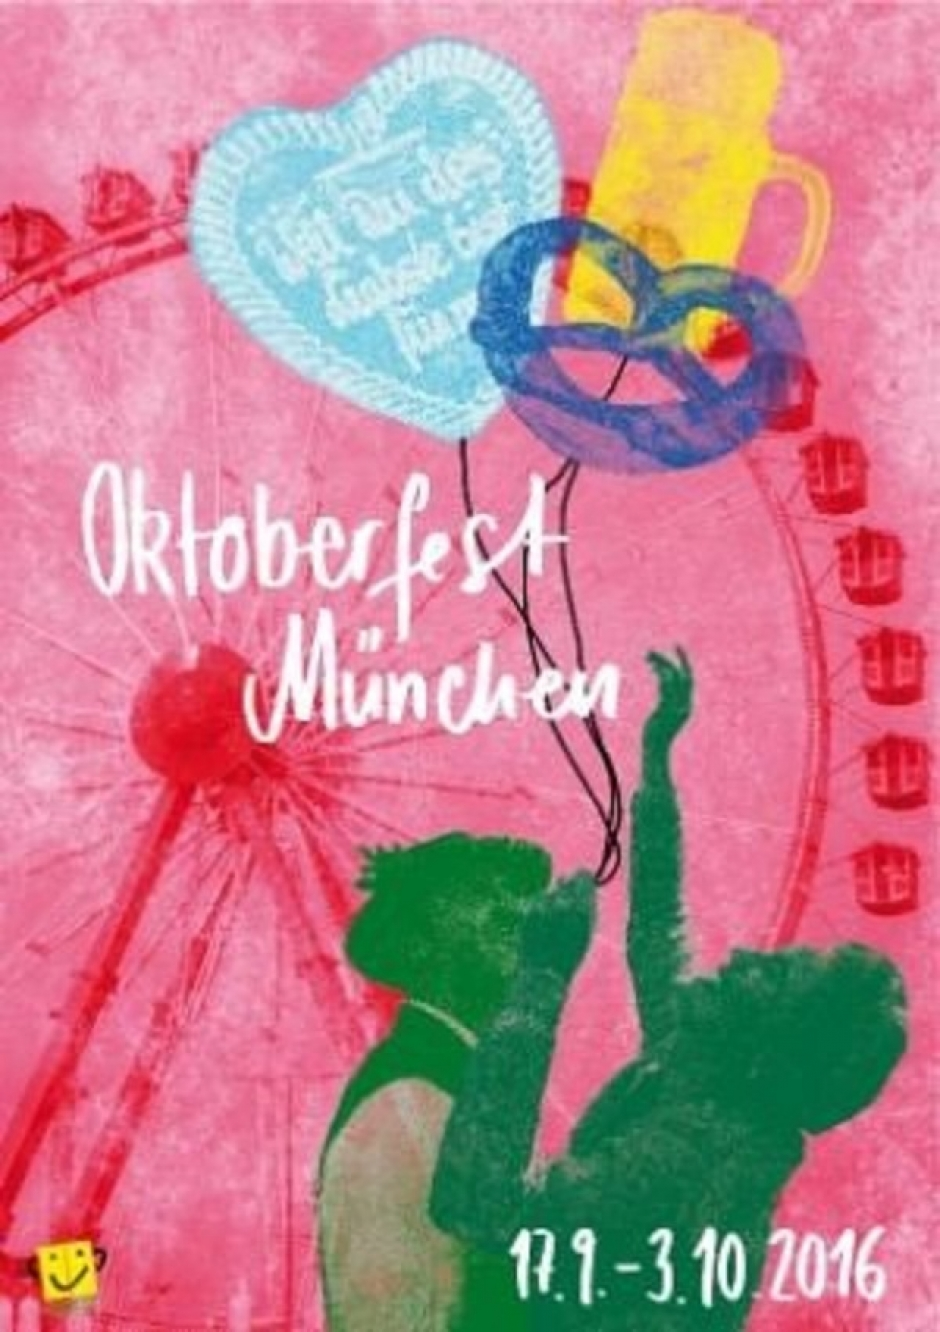 Oktoberfest 2016 Official Artwork Revealed